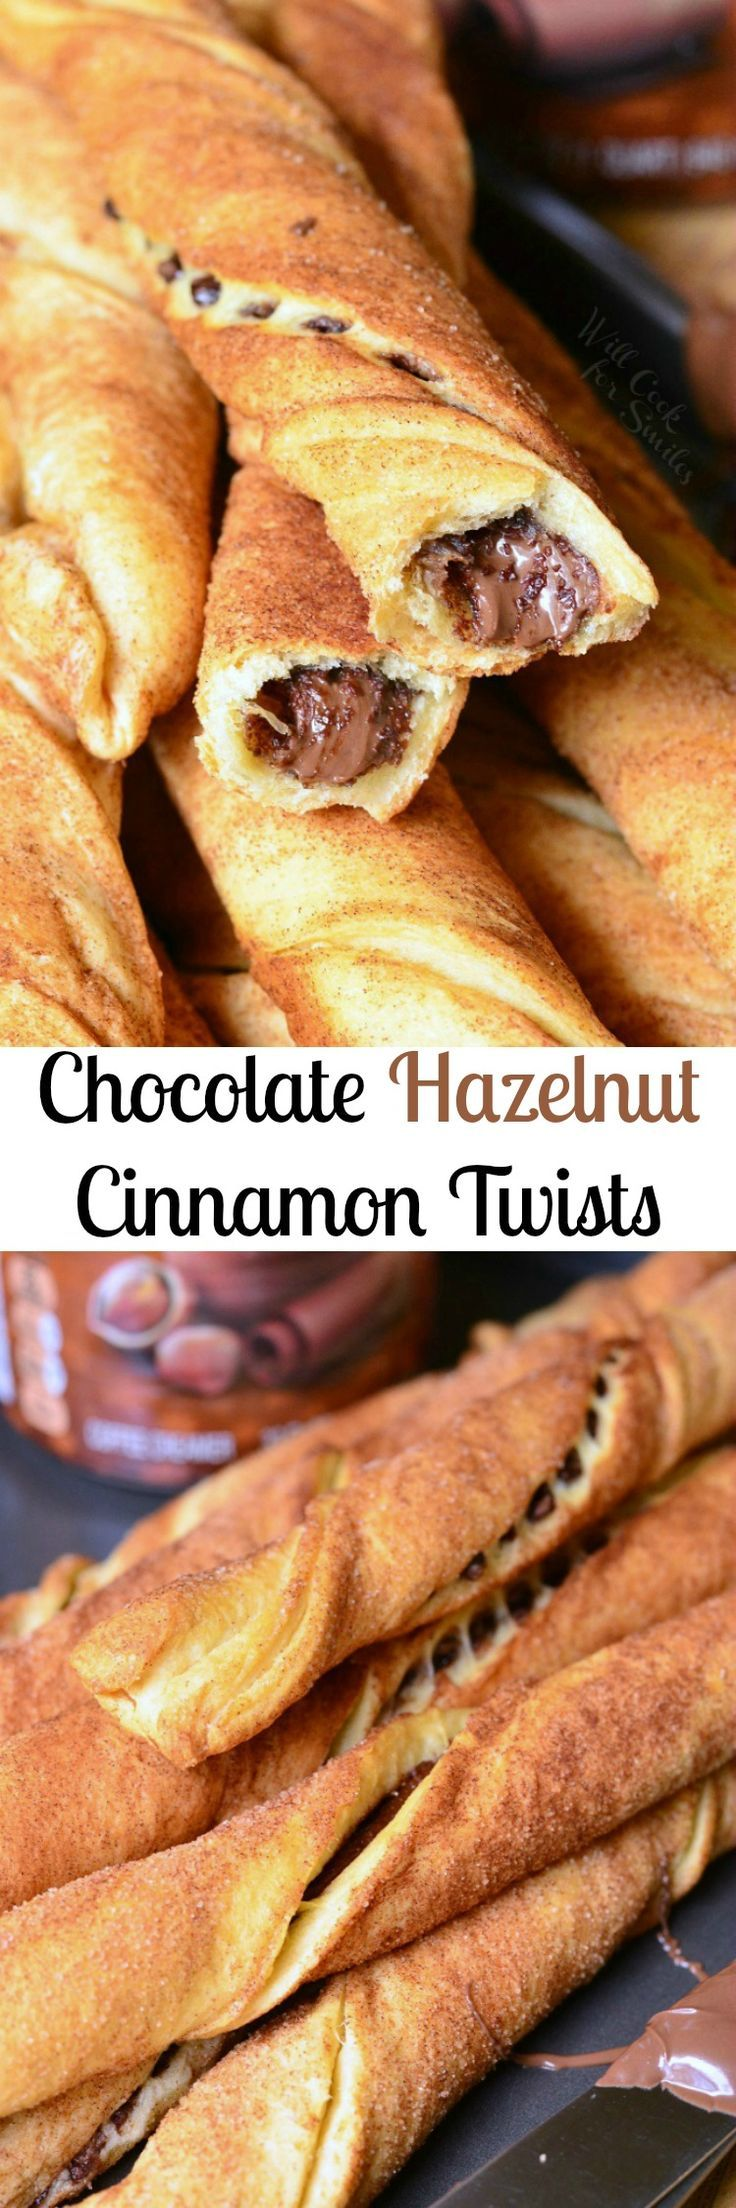 Chocolate Hazelnut Cinnamon Twists. Irresistible crescent dough pastry filled with Nutella and covered in cinnamon sugar.  #breakfast #chocolate